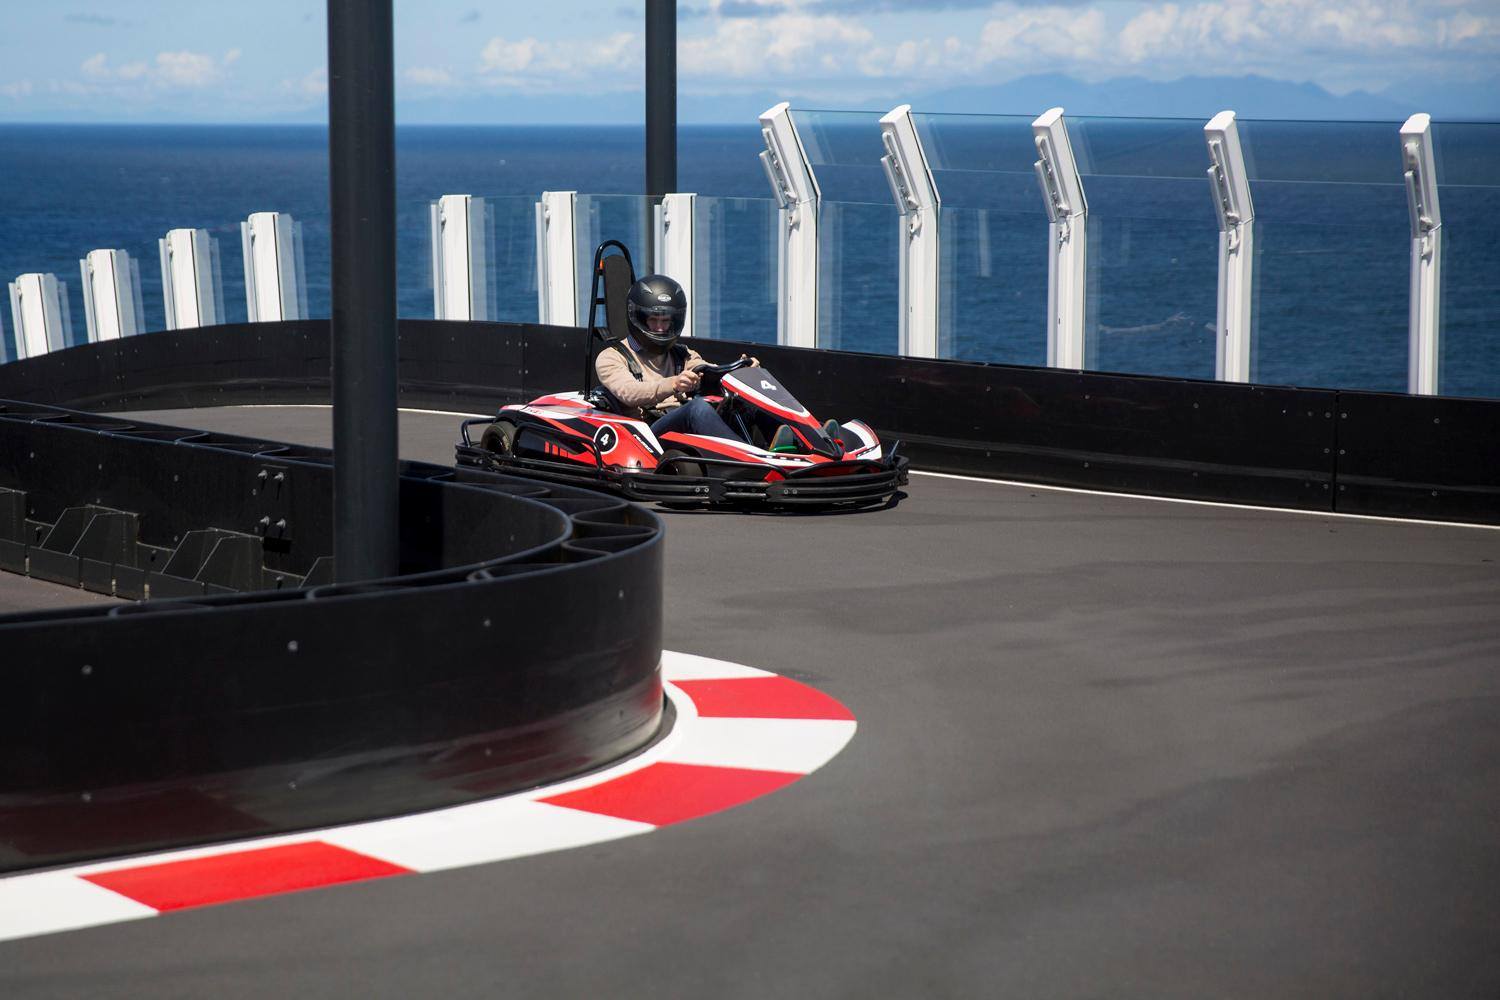 The most unique feature of the newly constructed Norwegian Bliss is that it's home to the world's longest race track on the sea, where guests can race go-karts! The newly constructed ship measures in at 1,004 feet and hosts a total of 4,004 guests, making it the 16th ship in the Norwegian Cruise Line fleet. Beginning June 2, Norwegian Bliss will cruise seven-day voyages to Alaska from Seattle with featured calls in Ketchikan, Juneau, Skagway and Victoria, British Columbia. (Sy Bean / Seattle Refined)(Sy Bean / Seattle Refined)